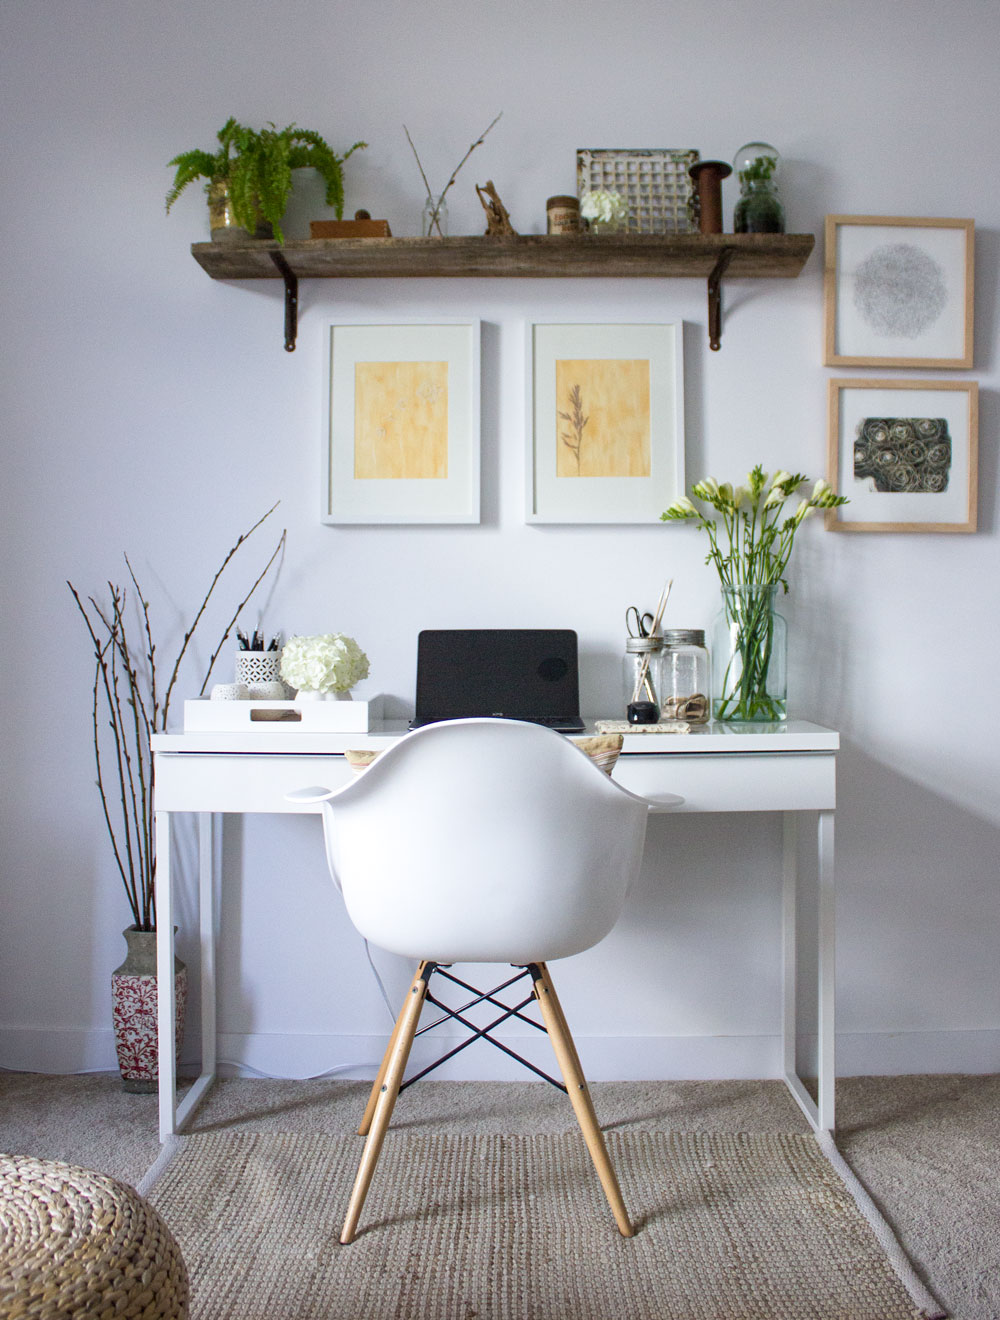 Tremendous Living Small Find Space For A Living Room Office Refreshed Designs Largest Home Design Picture Inspirations Pitcheantrous